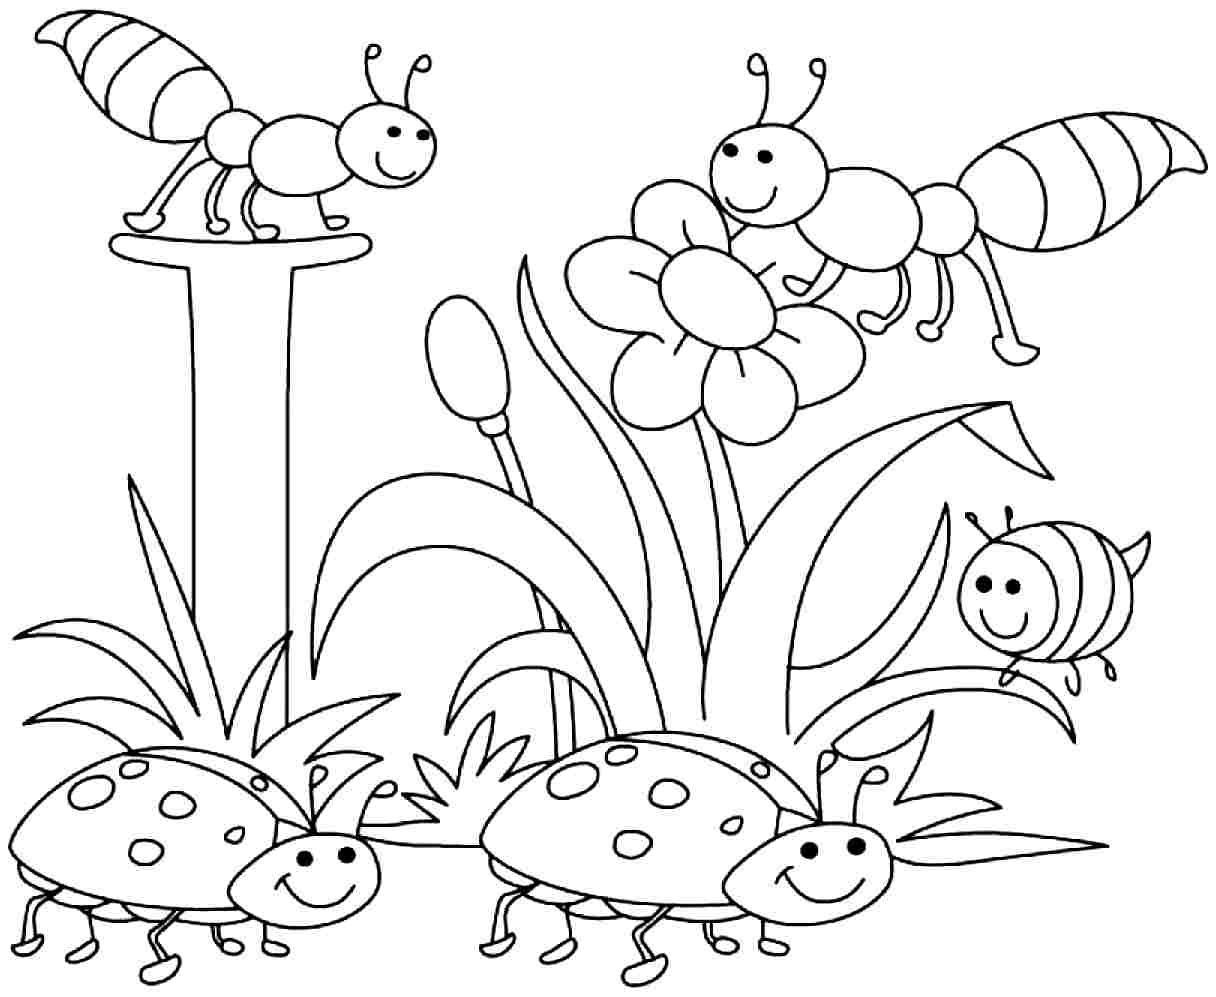 Free Printable Spring Coloring Pages Kids Easy Coloring Pages